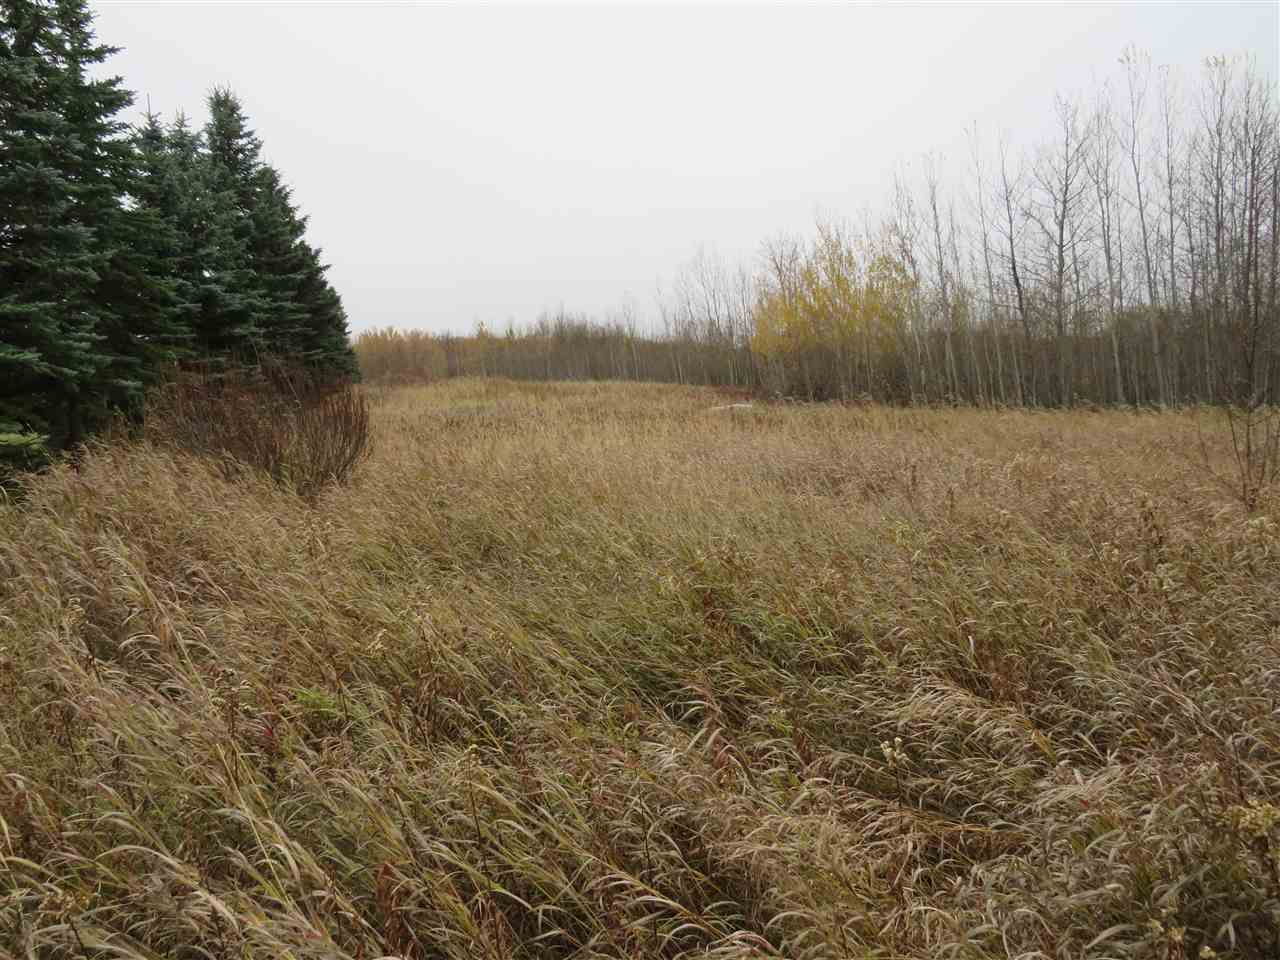 7.24 Acres in Aspen Estates located at 51422 RNG RD 195 within Beaver County.  Nicely treed acreage in a picturesque natural setting.  Convenient and quiet country location with easy access and commuting distance to Tofield and Sherwood Park.  Great walkout building site option; or recreational enjoyment.